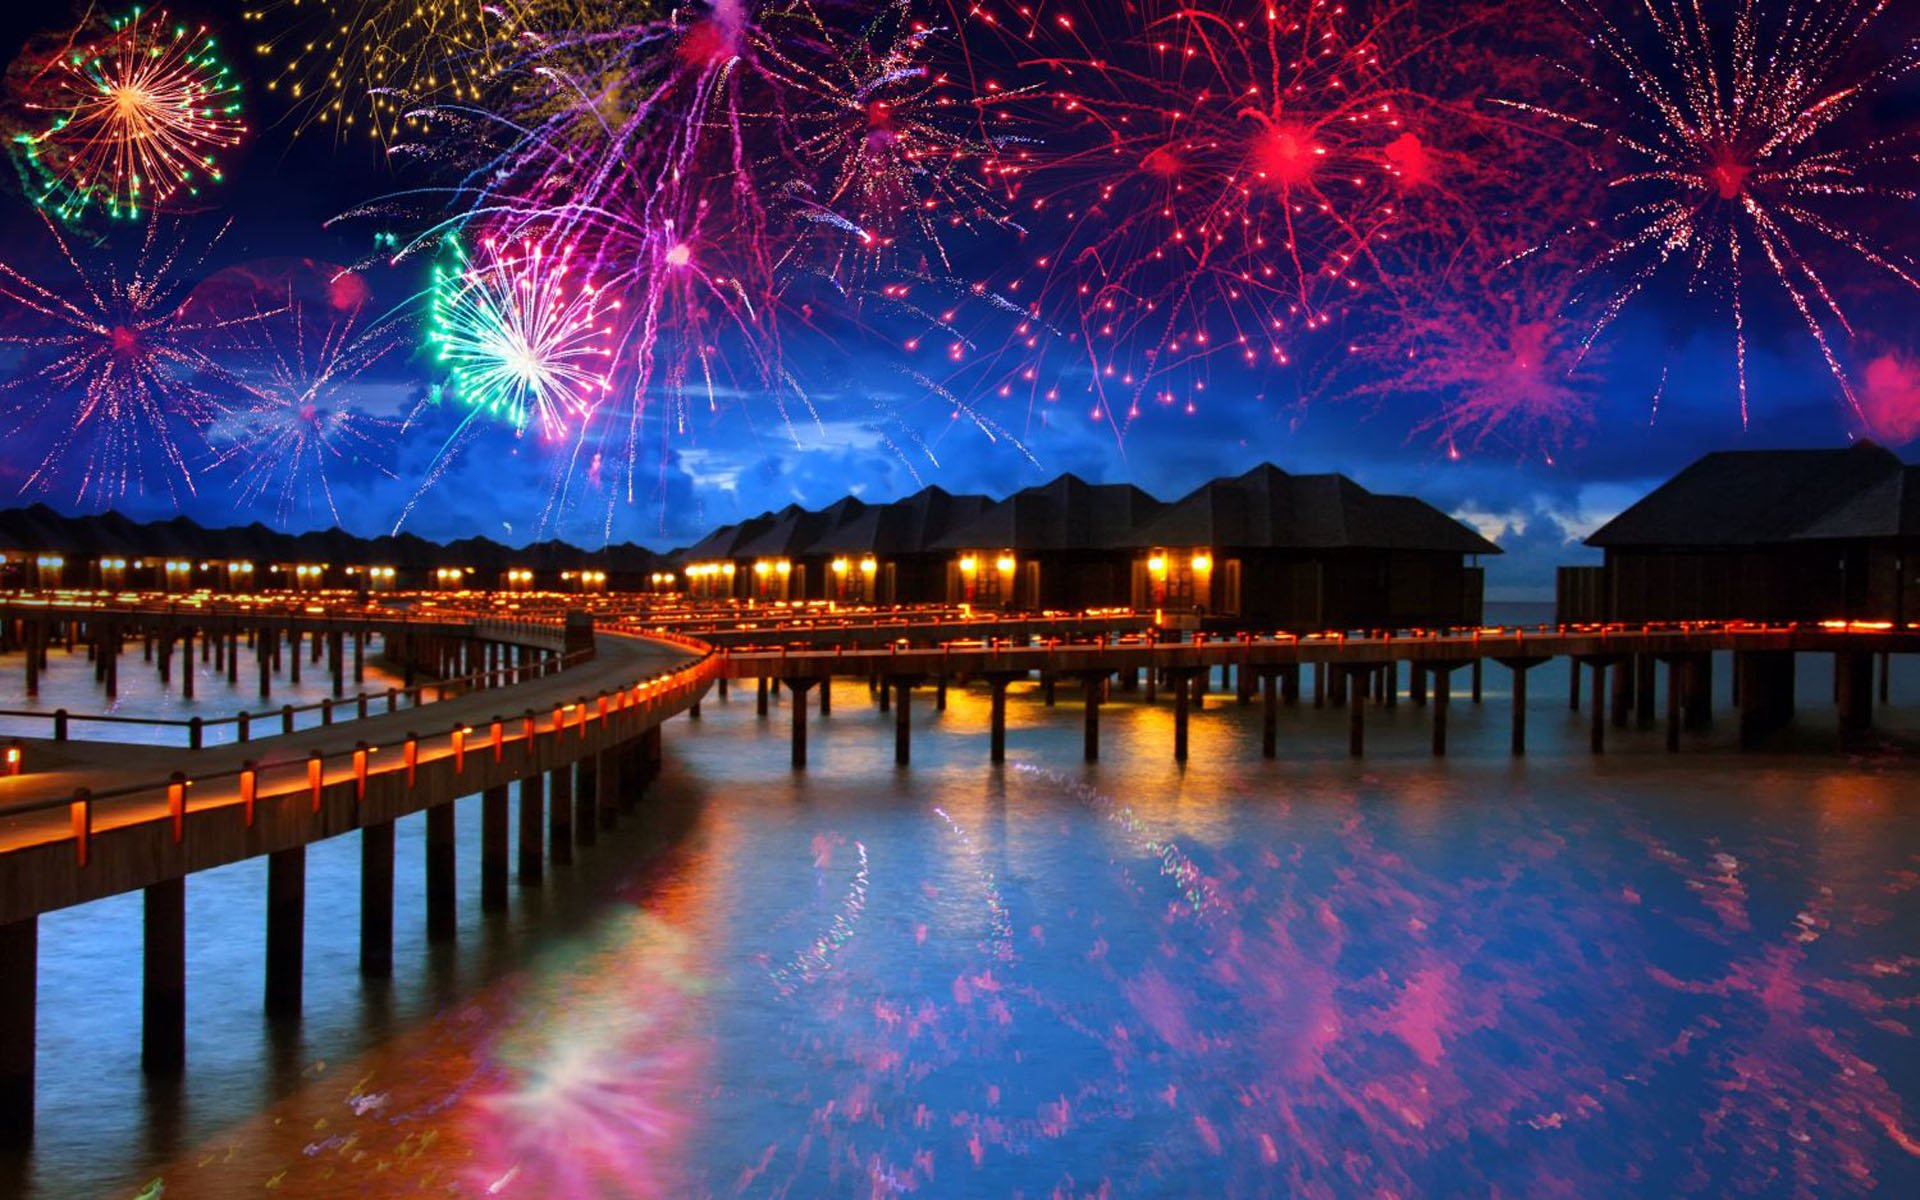 New Year S Eve Fireworks In The Maldives Hd Wallpaper Background